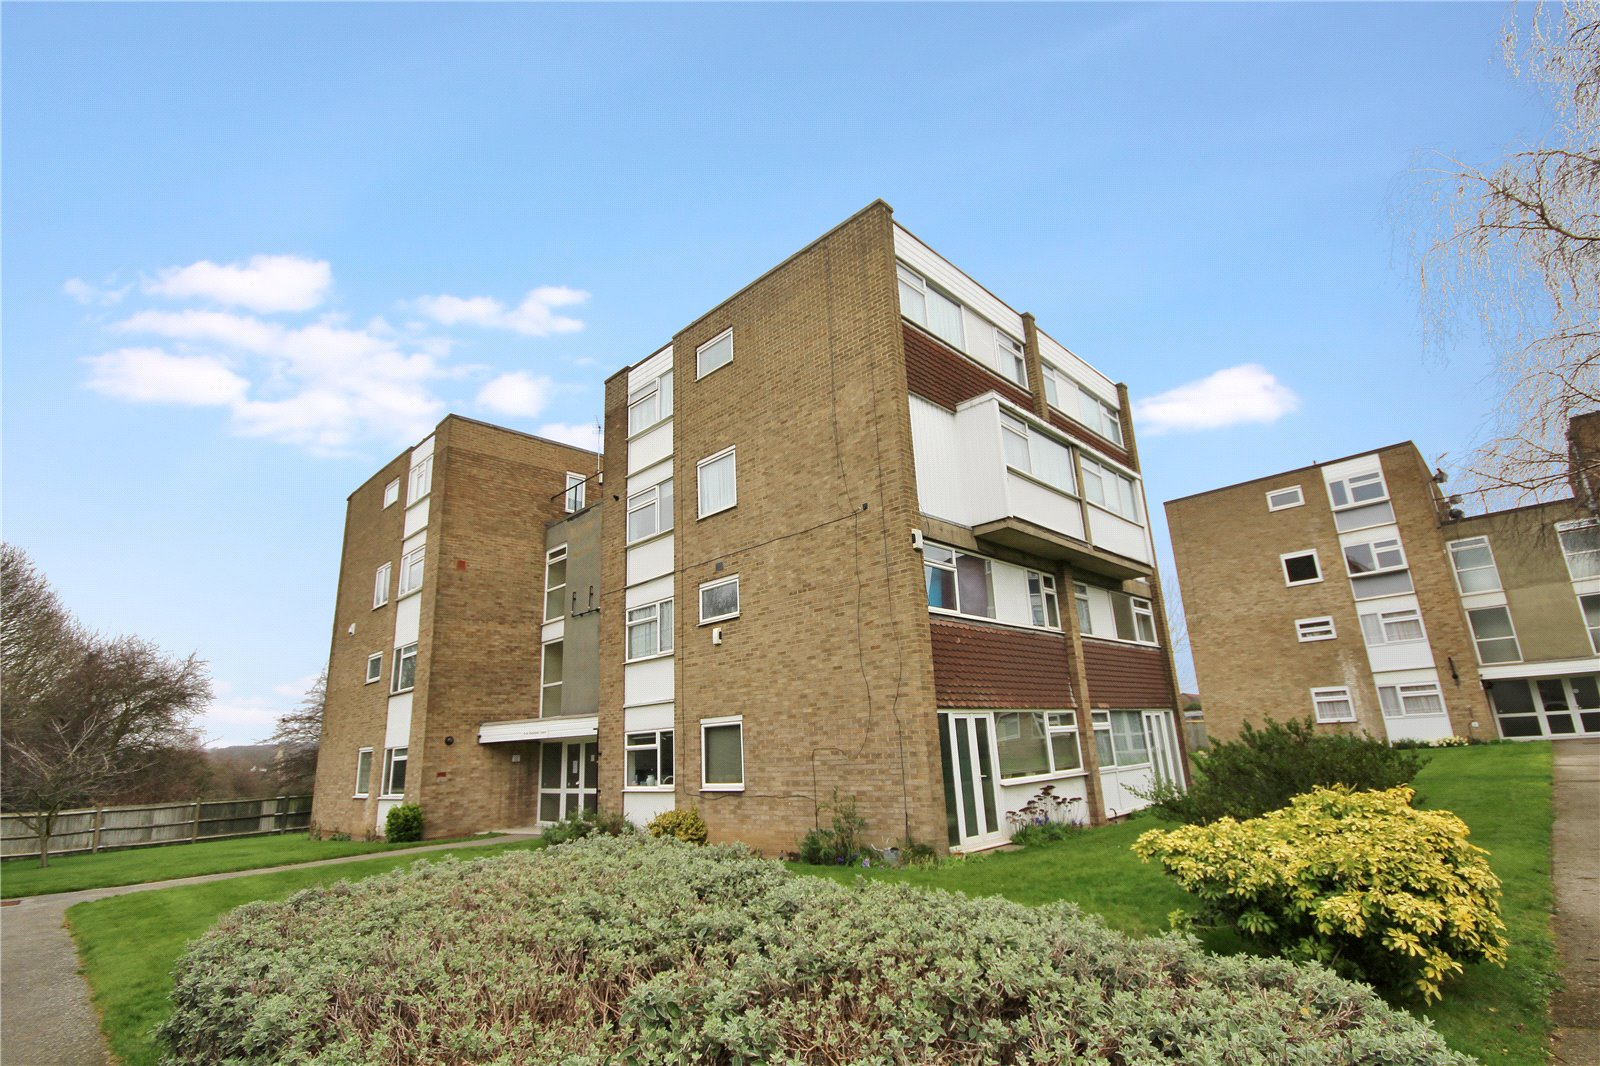 Elmfield Court, Wickham Street, Welling, Kent, DA16